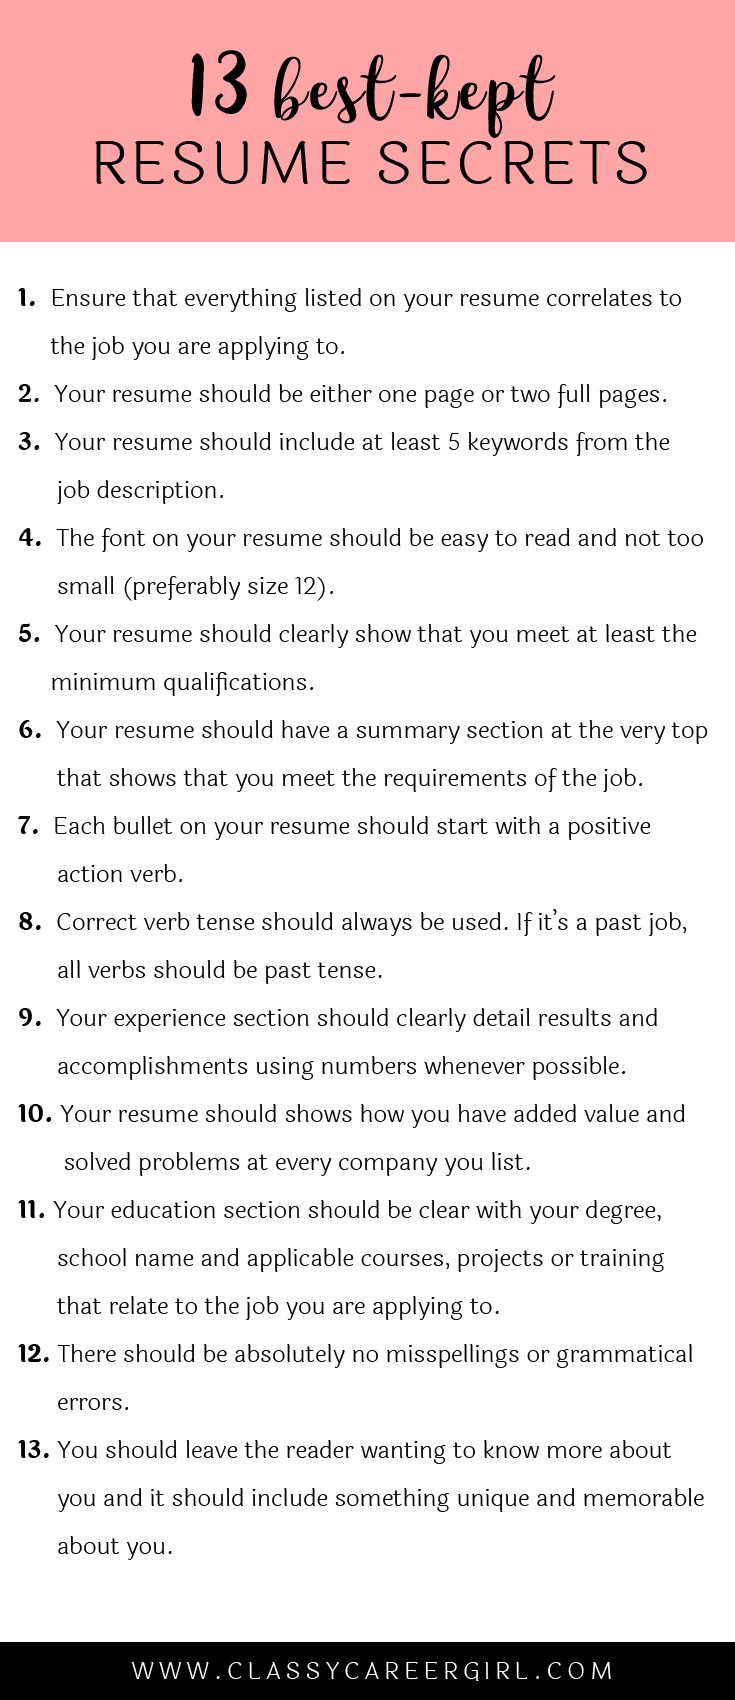 Opposenewapstandardsus  Pretty  Ideas About Resume On Pinterest  Cv Format Resume Cv And  With Licious Some Hiring Managers Will Toss Your Resume Out If You Dont Know These  With Lovely Events Coordinator Resume Also Health Care Resume In Addition Enclosed Is My Resume And Resume Reference Sheet As Well As Do A Resume Additionally How To Email A Resume And Cover Letter From Pinterestcom With Opposenewapstandardsus  Licious  Ideas About Resume On Pinterest  Cv Format Resume Cv And  With Lovely Some Hiring Managers Will Toss Your Resume Out If You Dont Know These  And Pretty Events Coordinator Resume Also Health Care Resume In Addition Enclosed Is My Resume From Pinterestcom